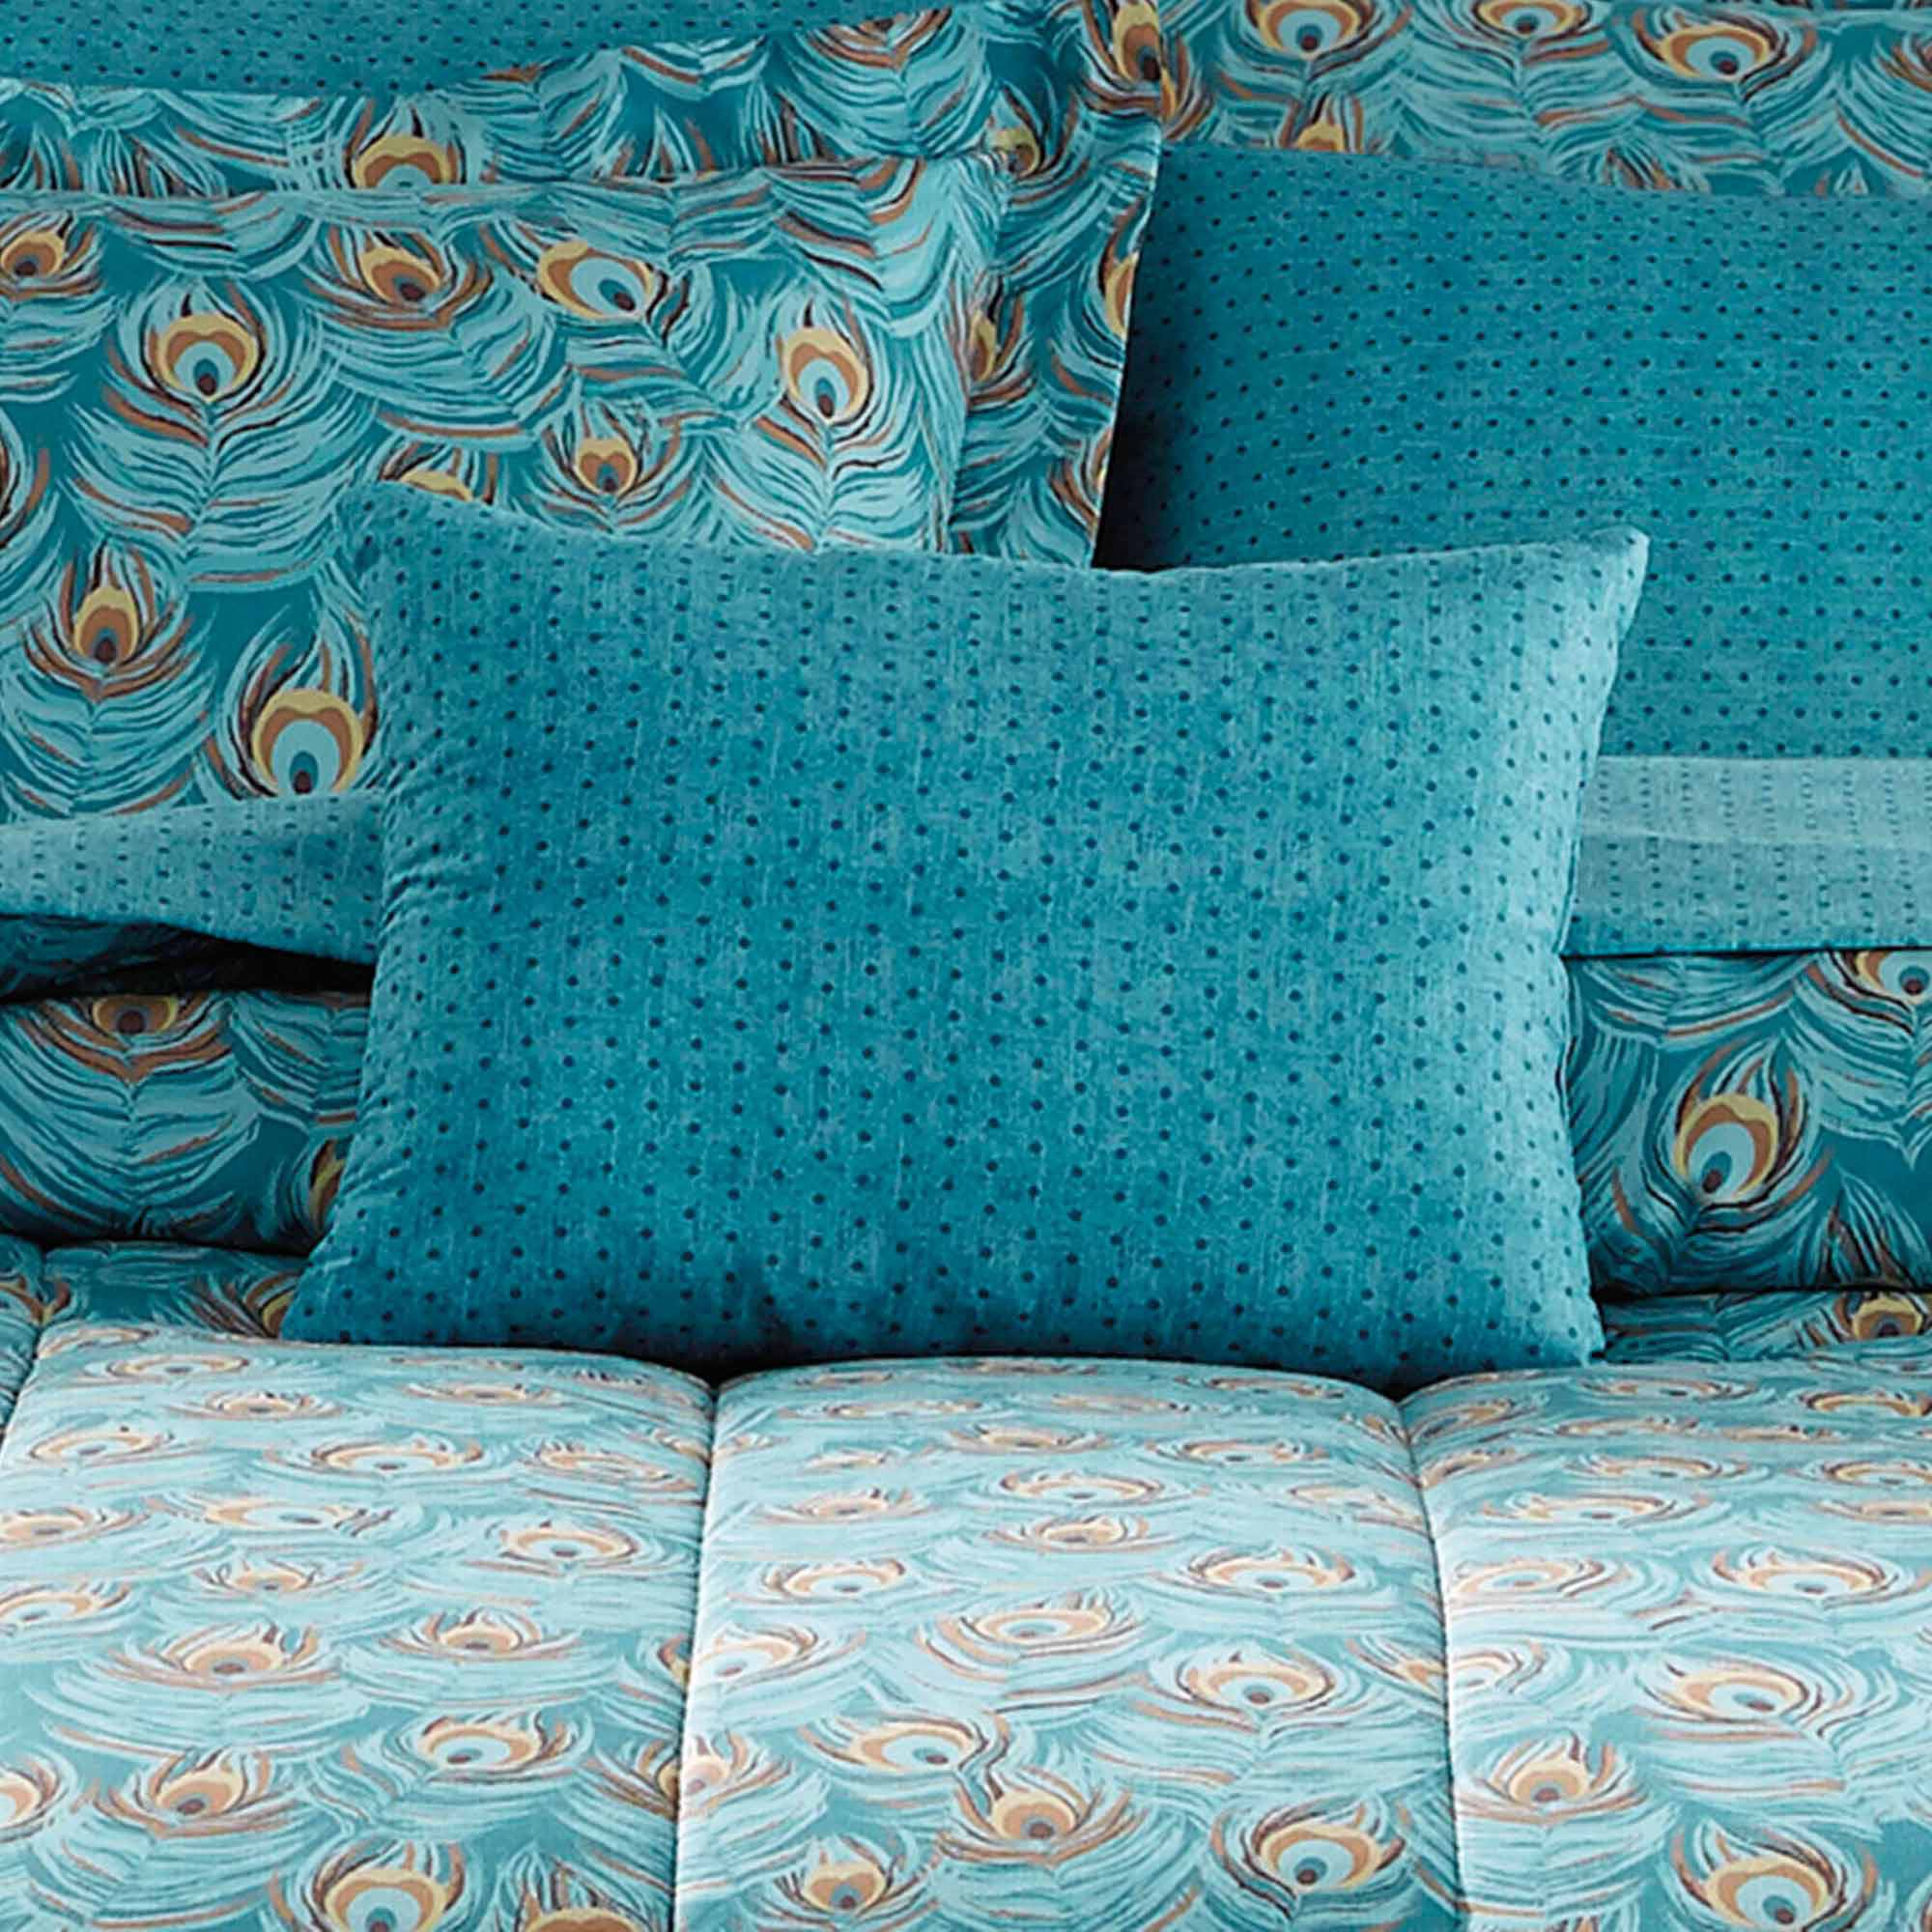 Peacock Alley Outlet | Peacock Bedding | Trina Turk Peacock Bedding